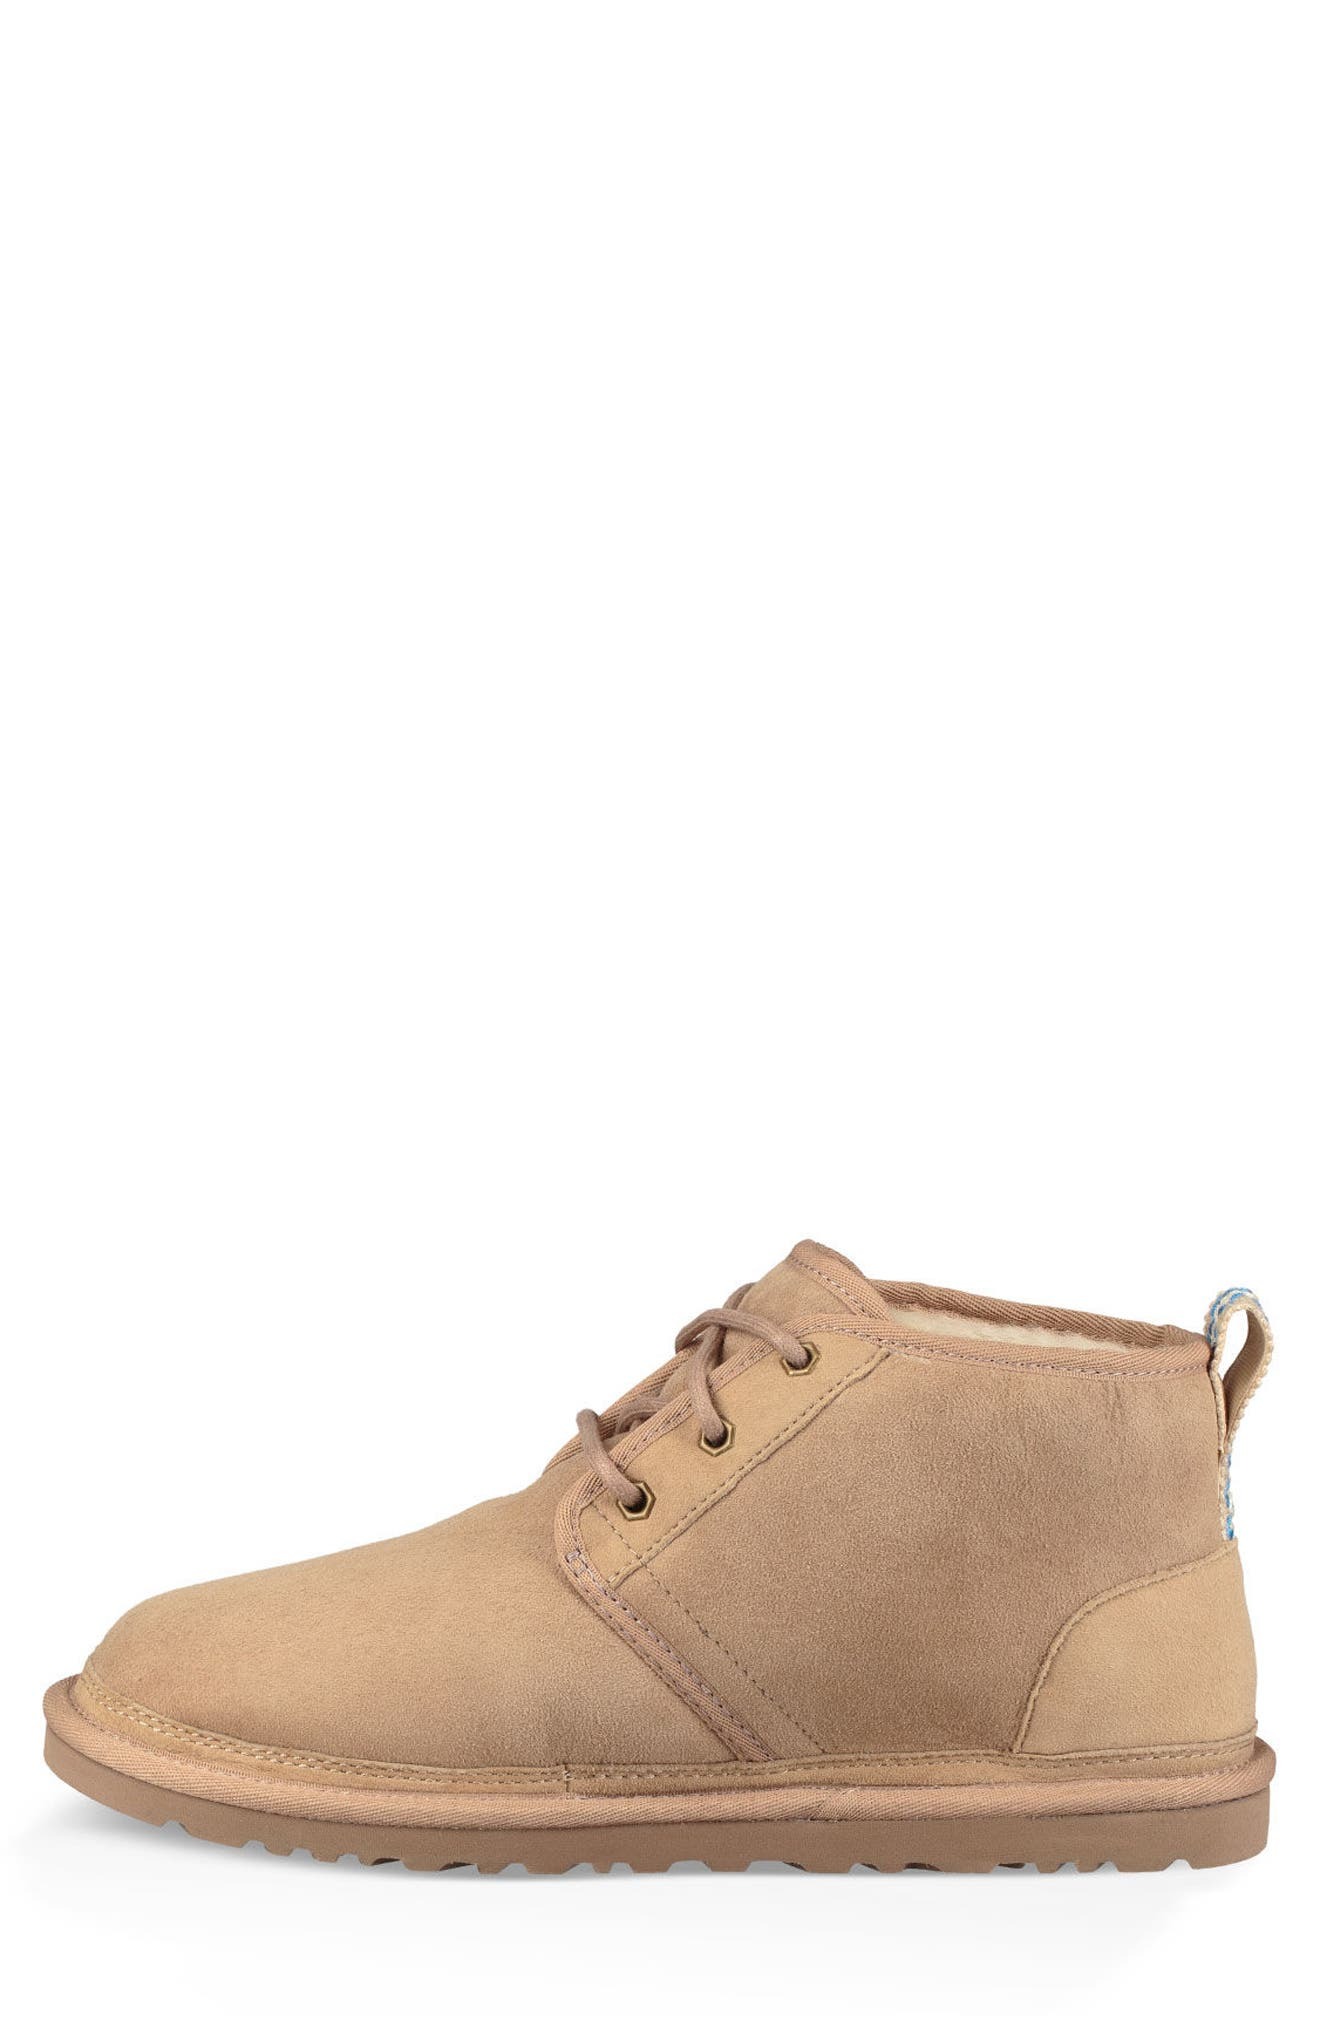 Neumel 40:40:40 Anniversary Genuine Shearling Boot,                             Alternate thumbnail 3, color,                             SAND